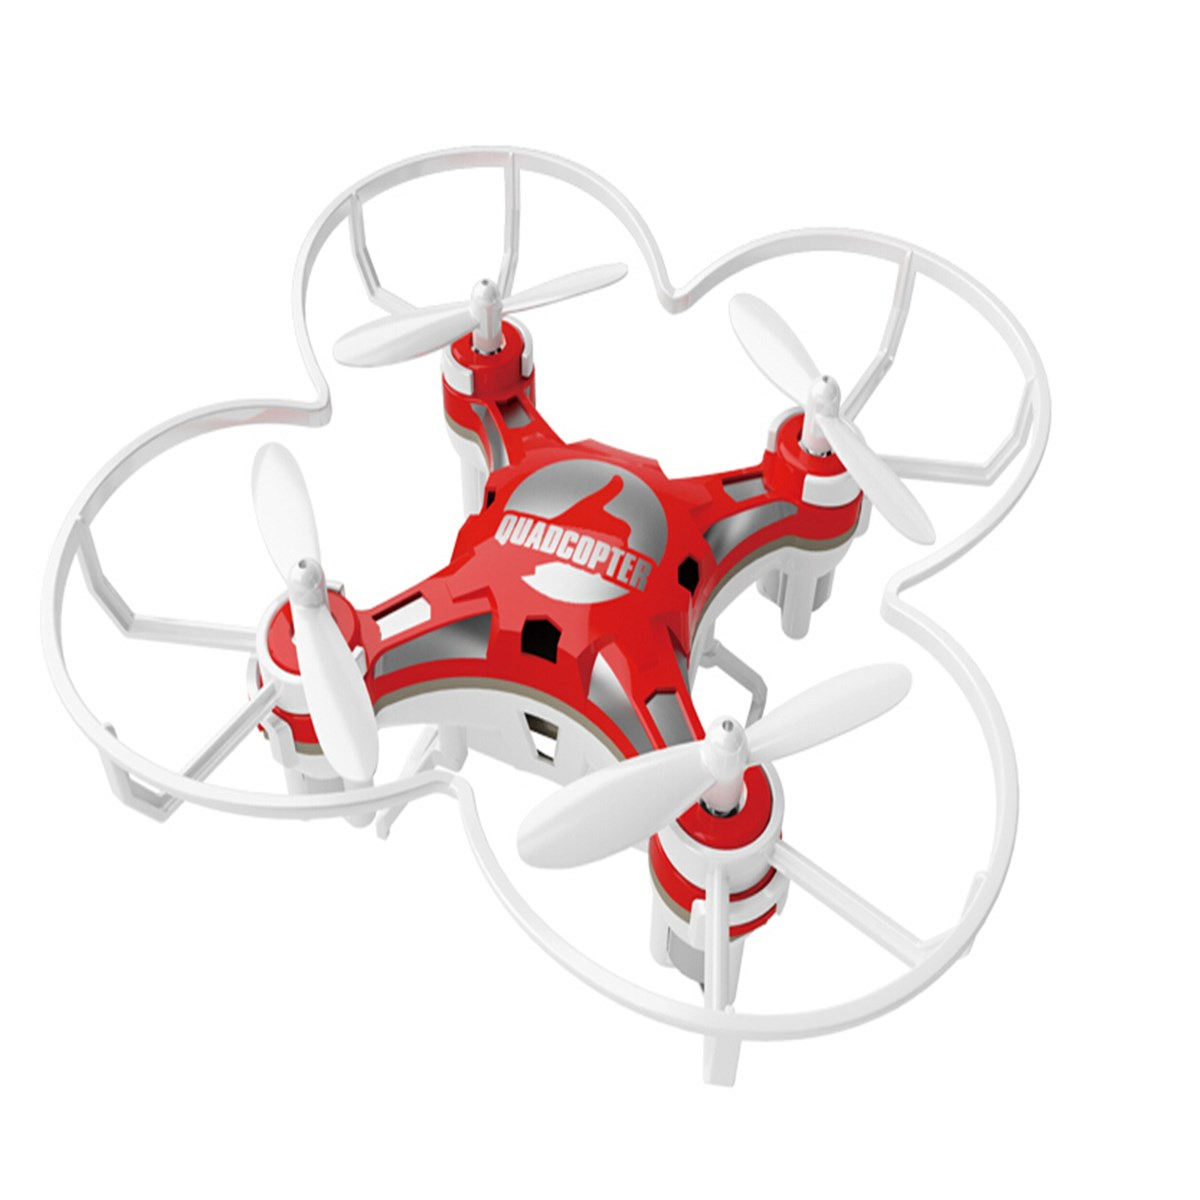 FQ777 124 Pocket Drone 4CH 6Axis Gyro Quadcopter With Switchable Controller RTF Helicopter Toys